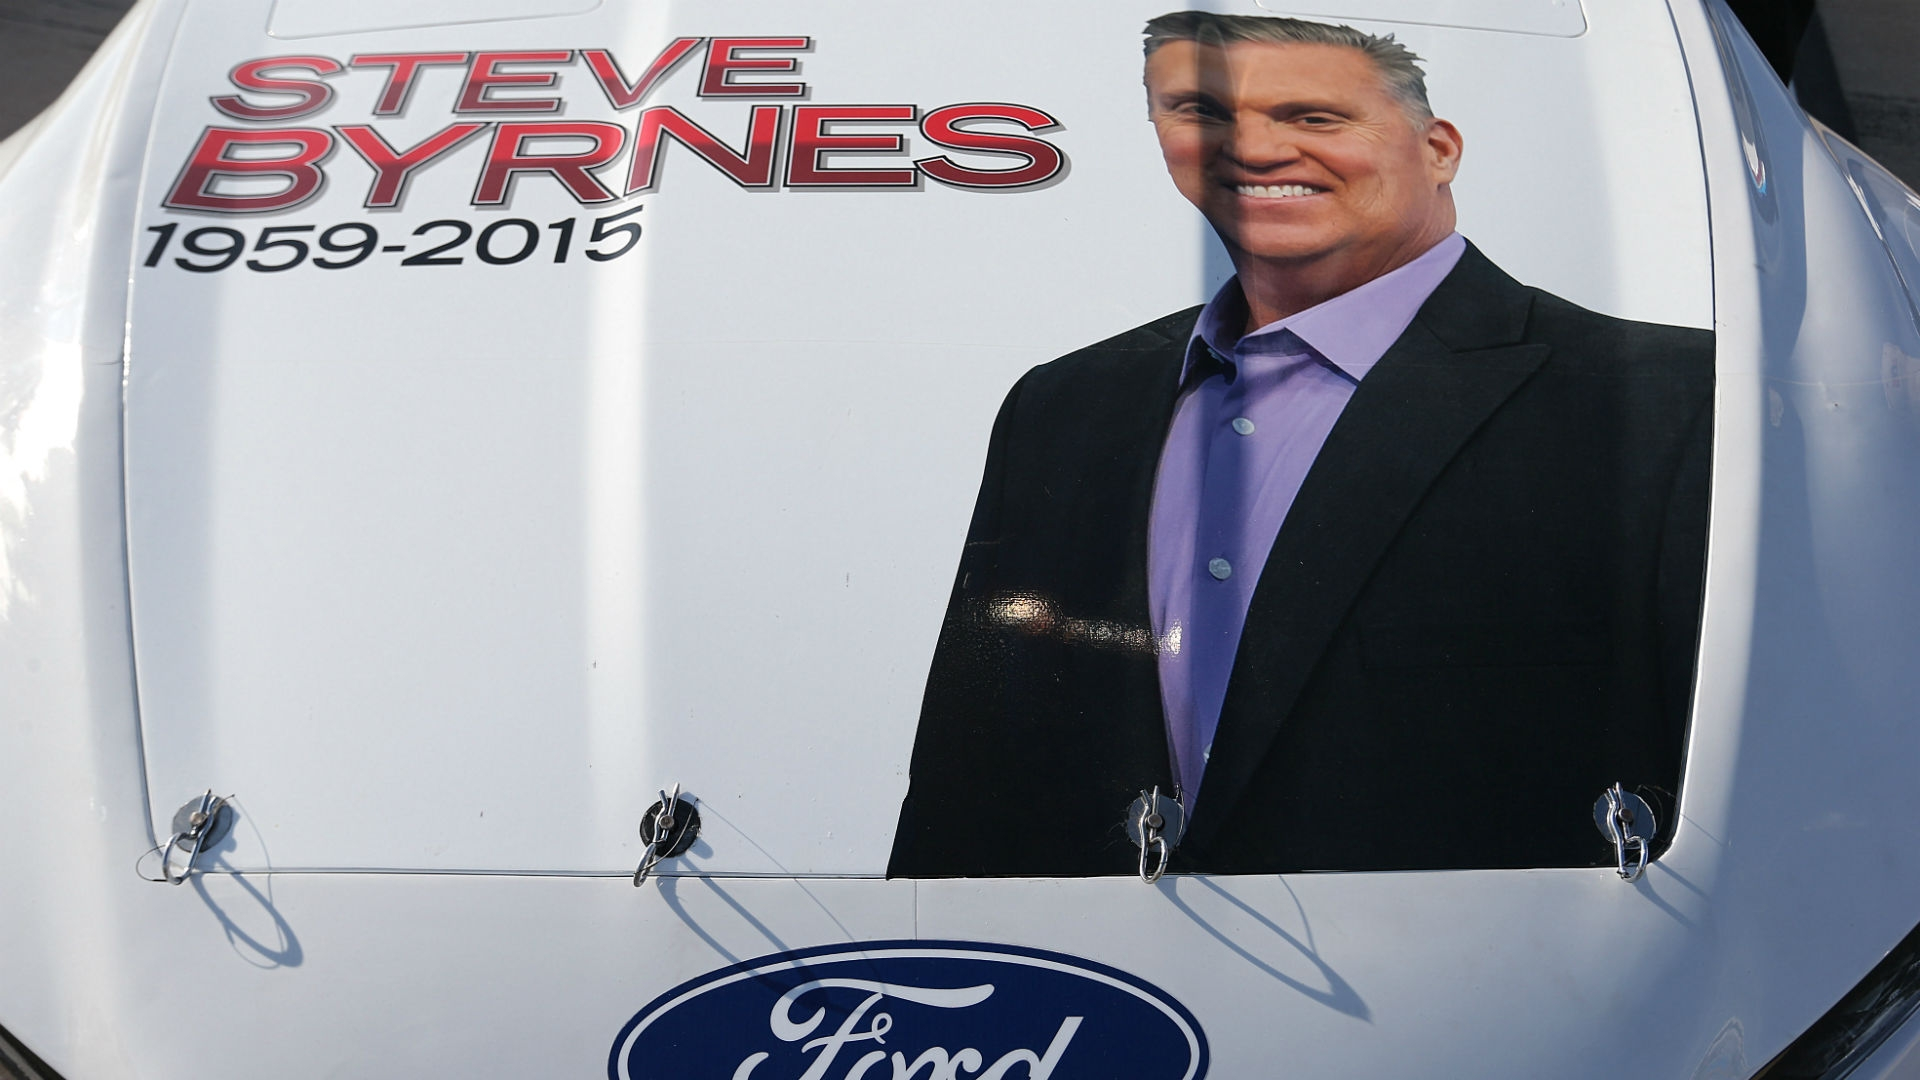 NASCAR teams honor the late Steve Byrnes at Richmond